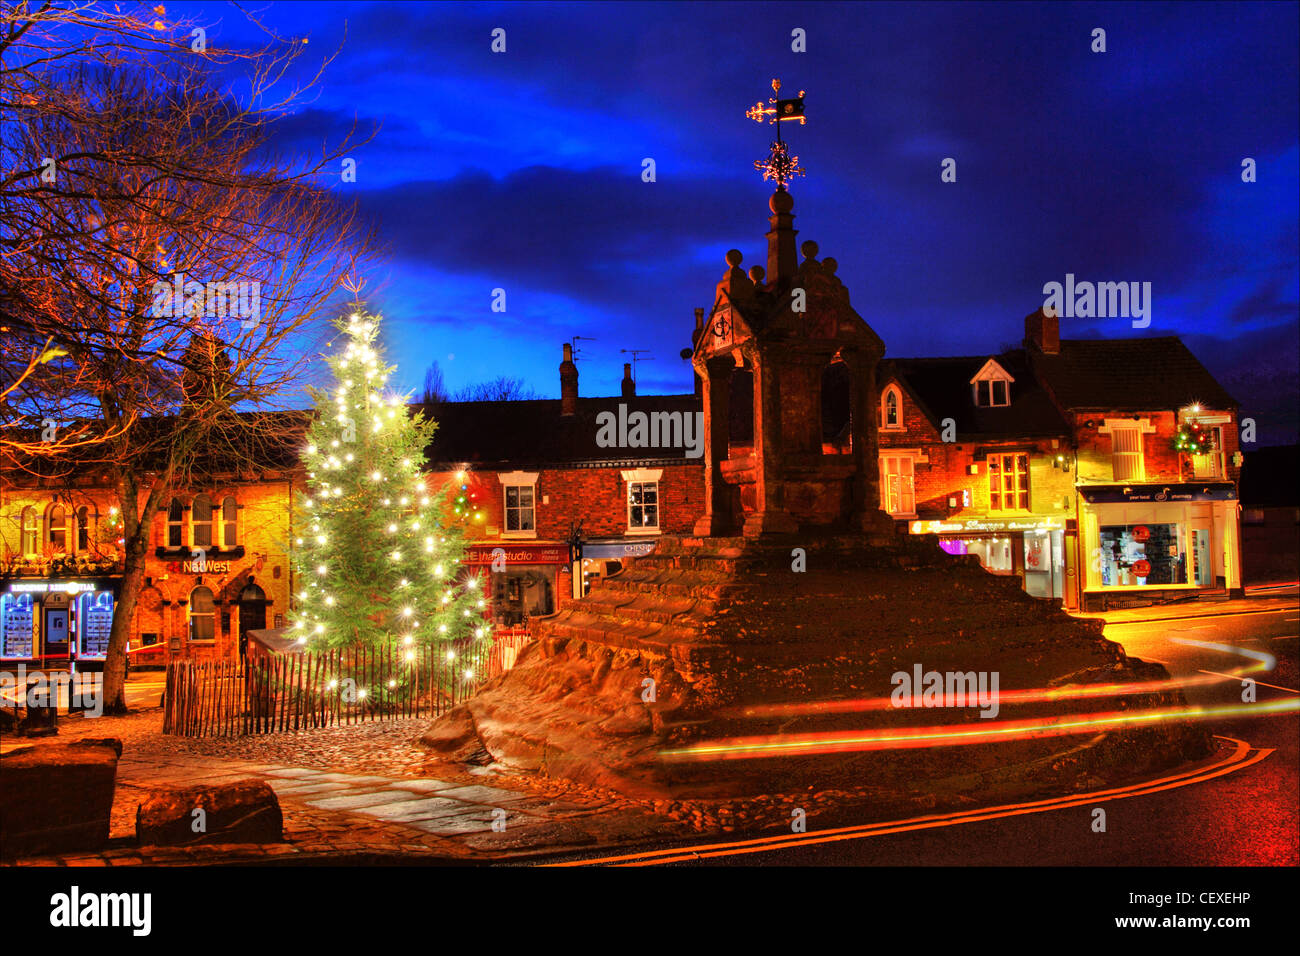 Xmas at the Christmas Tree at Lymm Cross,Lymm village,Cheshire,England,UK,WA13,0HP,WA130HP,winter,snowless,scene,scenes,lights,treelights,treelight,gotonysmith,dusk,night,shot,blue,hour,bluehour,25th,december,cold,frosty,evening,LymmCross,scene,gotonysmith,Buy Pictures of,Buy Images Of,Lymm Cross is in the village of Lymm,Cheshire,England.,It,has,been,designated,by,English,Heritage,as,a,Grade,I,listed,building.,The,cross,dates,from,the,early,to,the,middle,17th,century,and,it,was,restored,in,1897.,It,is,constructed,of,sandstone,and,stands,on,an,artificially,stepped,natural,outcrop,of,red,sandstone.,Its,shaft,stands,in,a,square,pavilion,of,red,sandstone,with,square,corner,pillars.,It,has,a,stone,roof,with,a,pedimented,gable,to,each,face,and,ball,finials.,Above,the,cross,is,an,extension,which,carries,a,stone,ball,and,an,ornate,weather,vane.,On,the,east,south,and,west,gables,are,bronze,sundials,of,1897,carrying,the,inscriptions,and,1,We are a Shadow,Save Time,Think of the Last